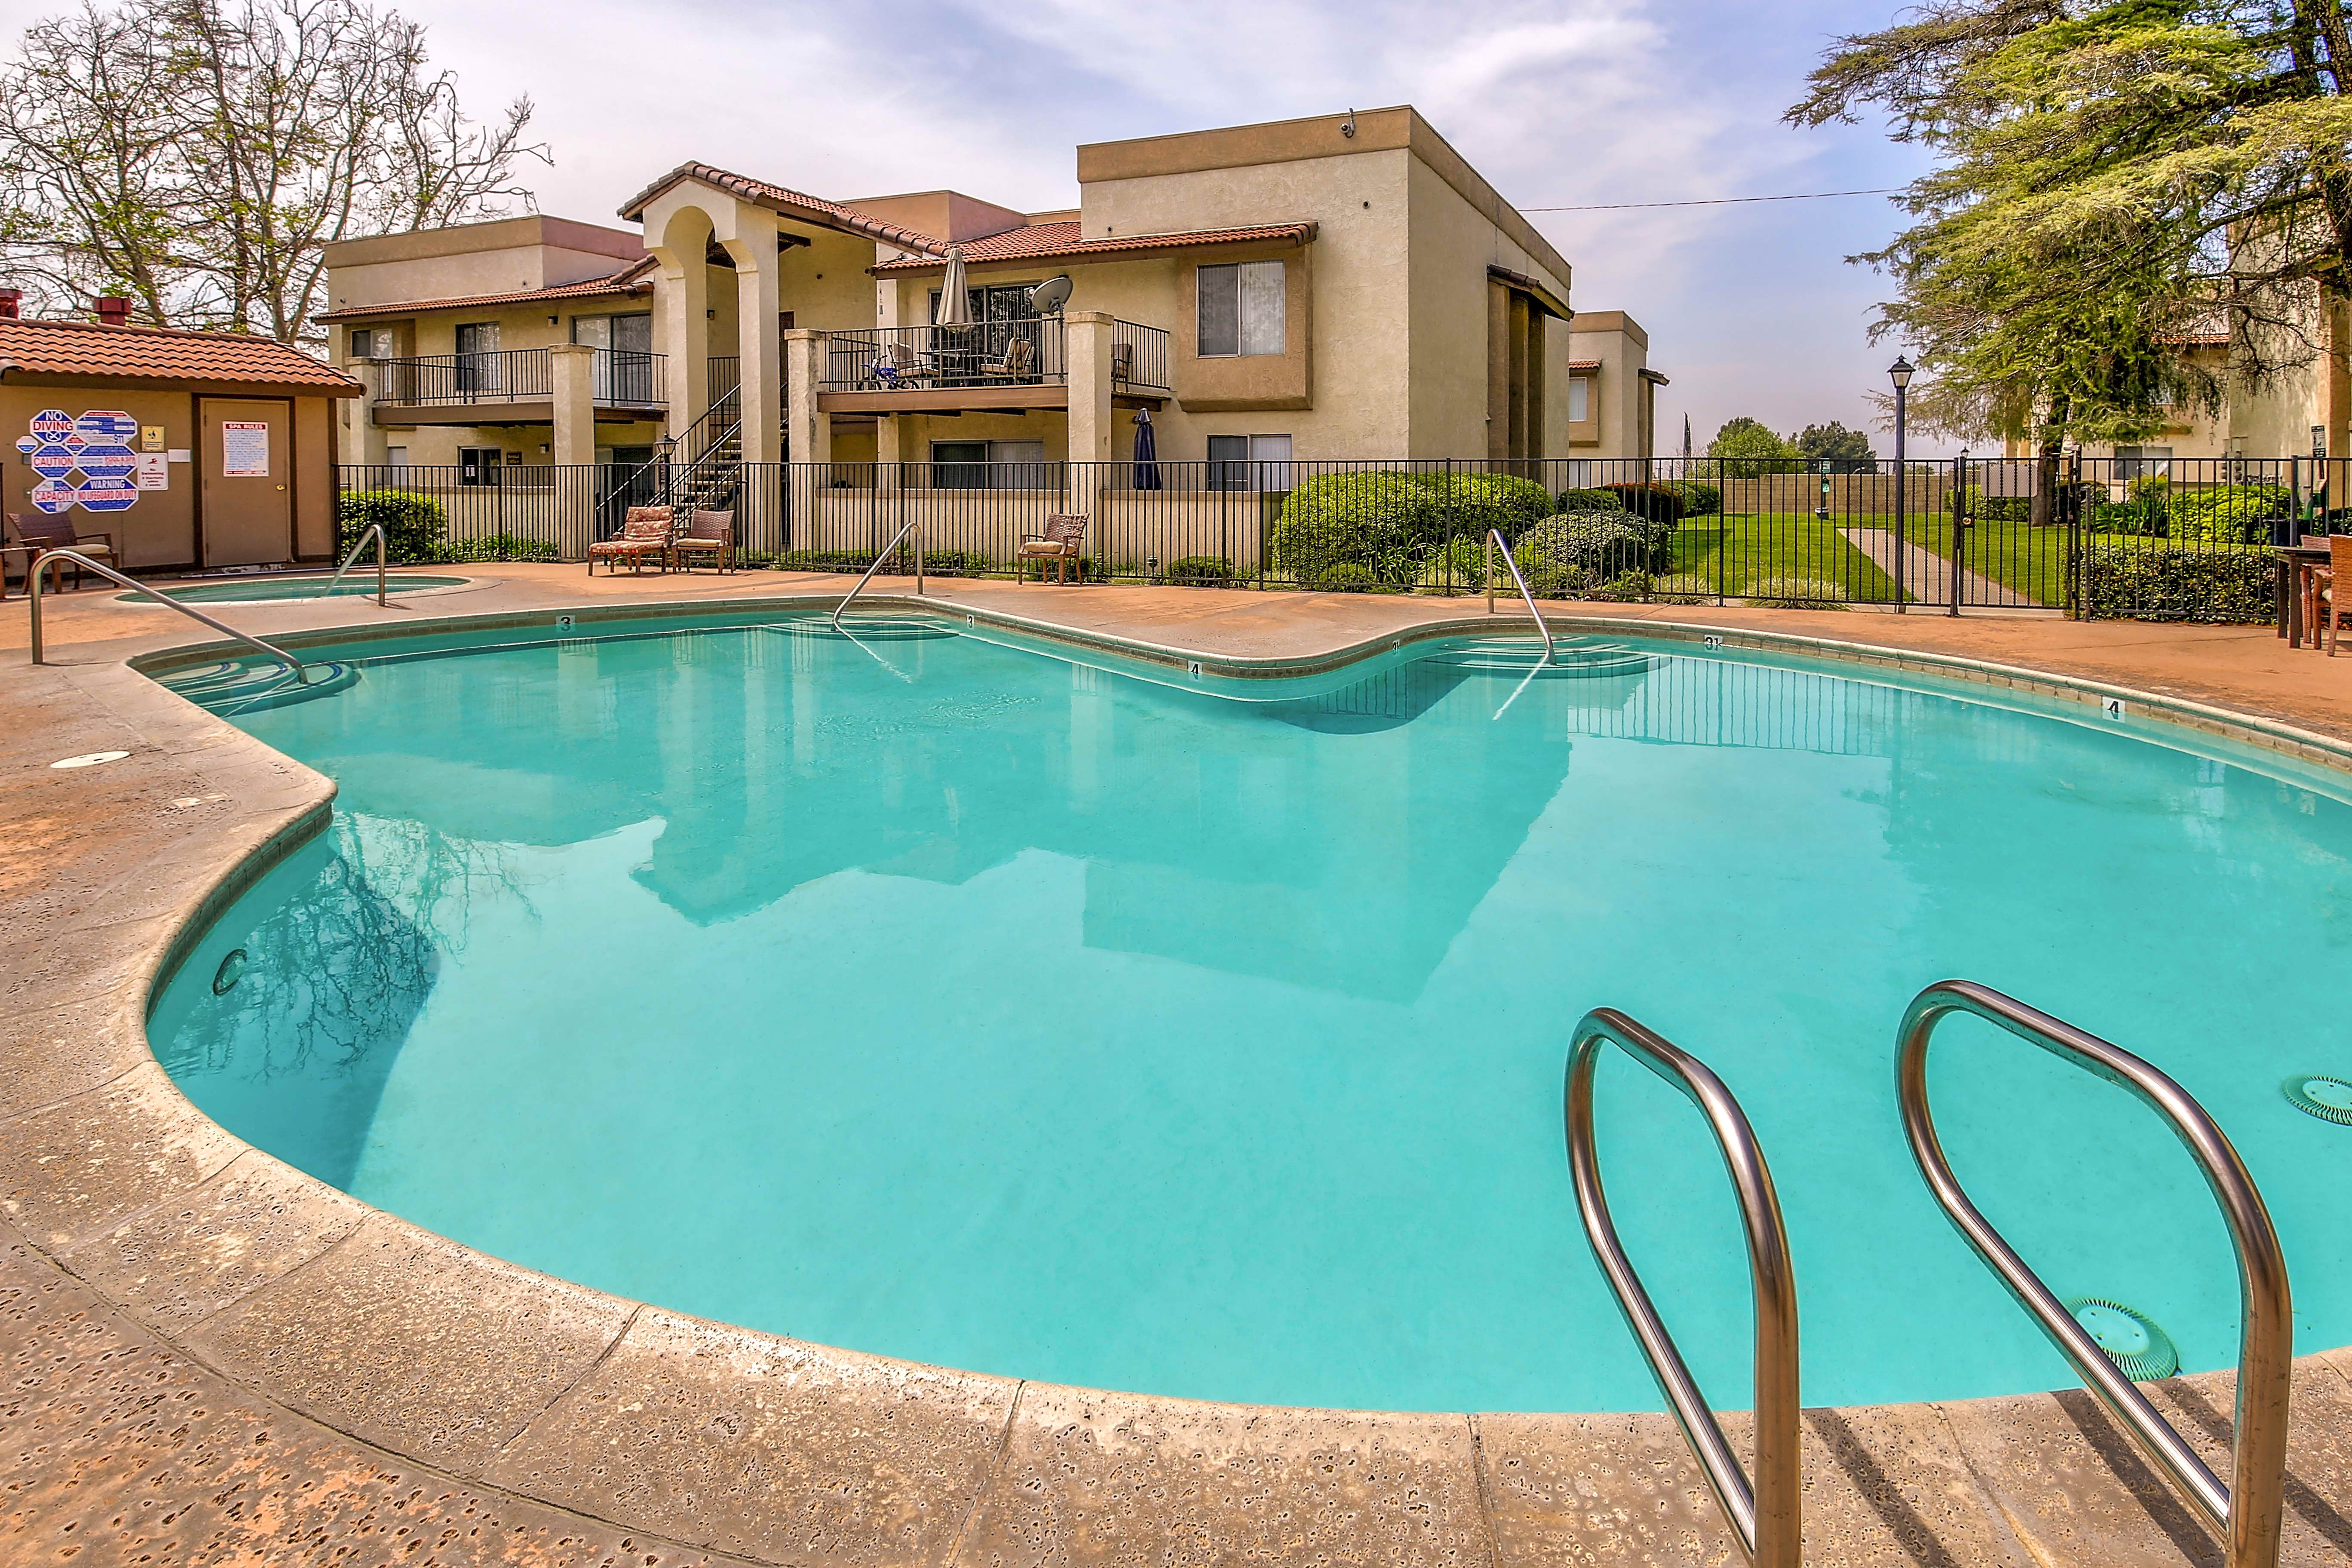 Monterey Villas Apartments Highland Ca 92346